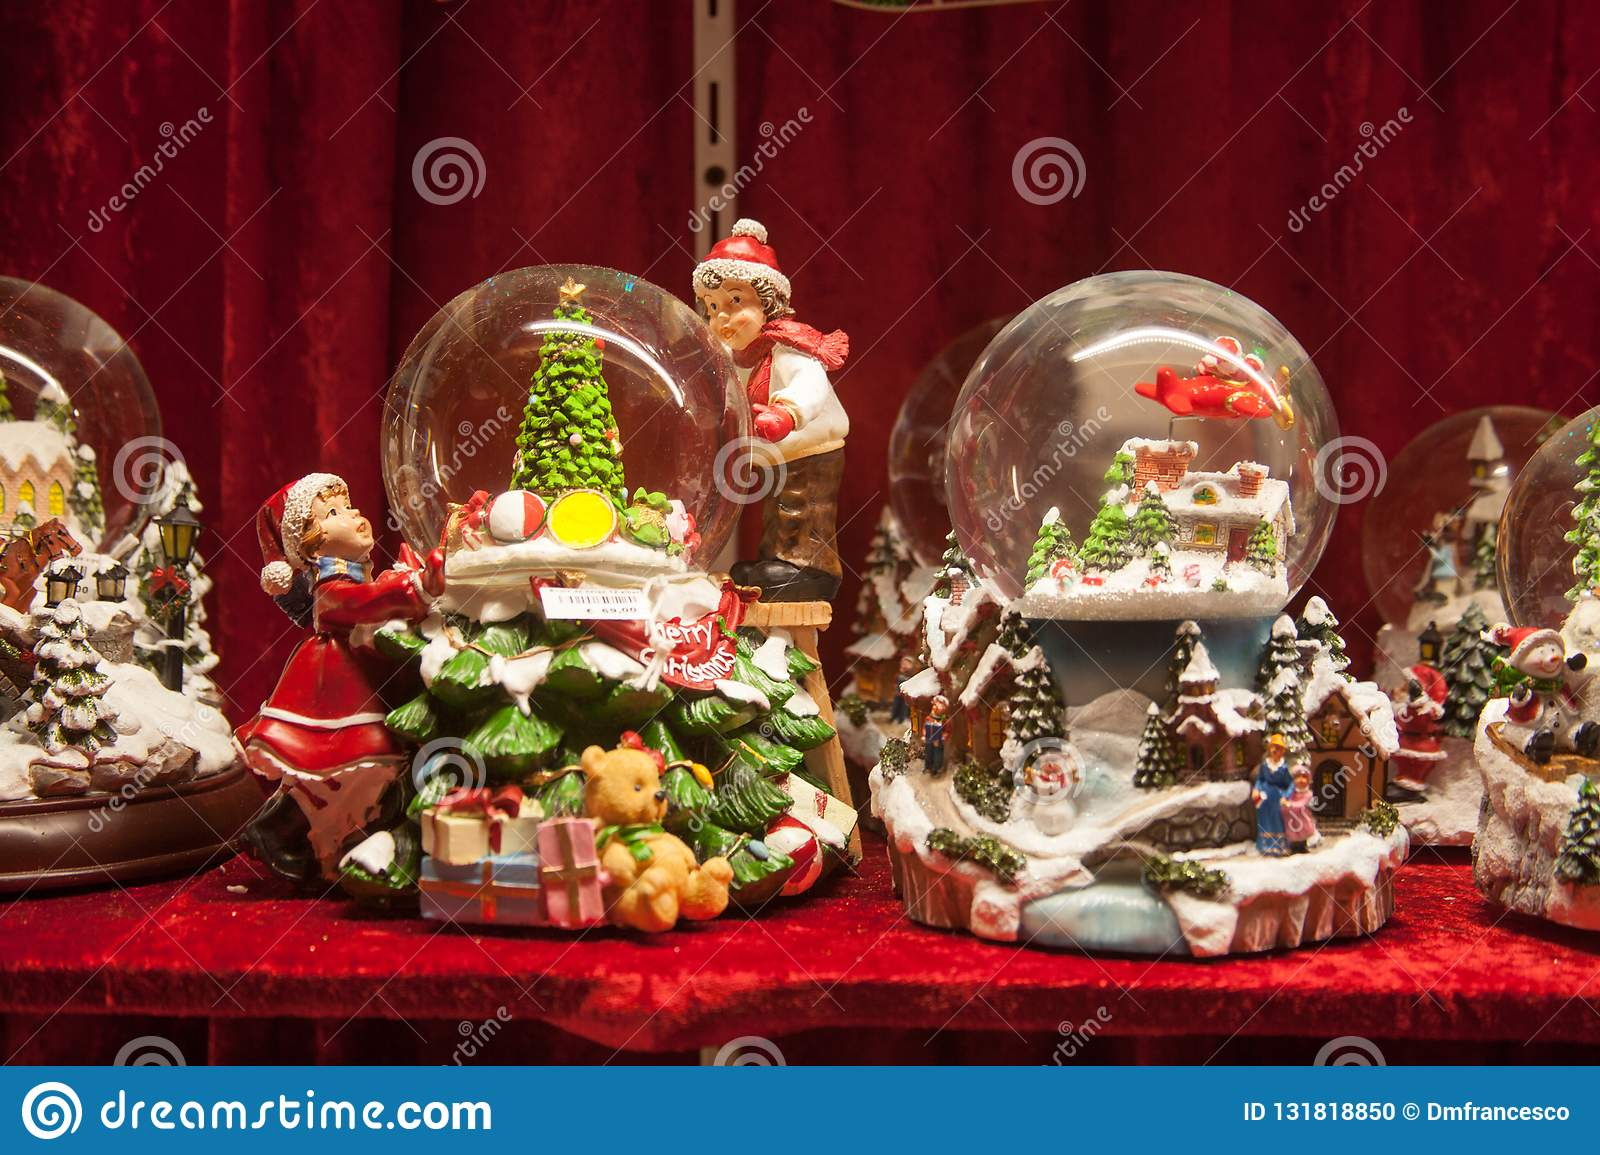 Christmas In Italy Decorations.Christmas Markets Christmas Decorations Village Of Santa